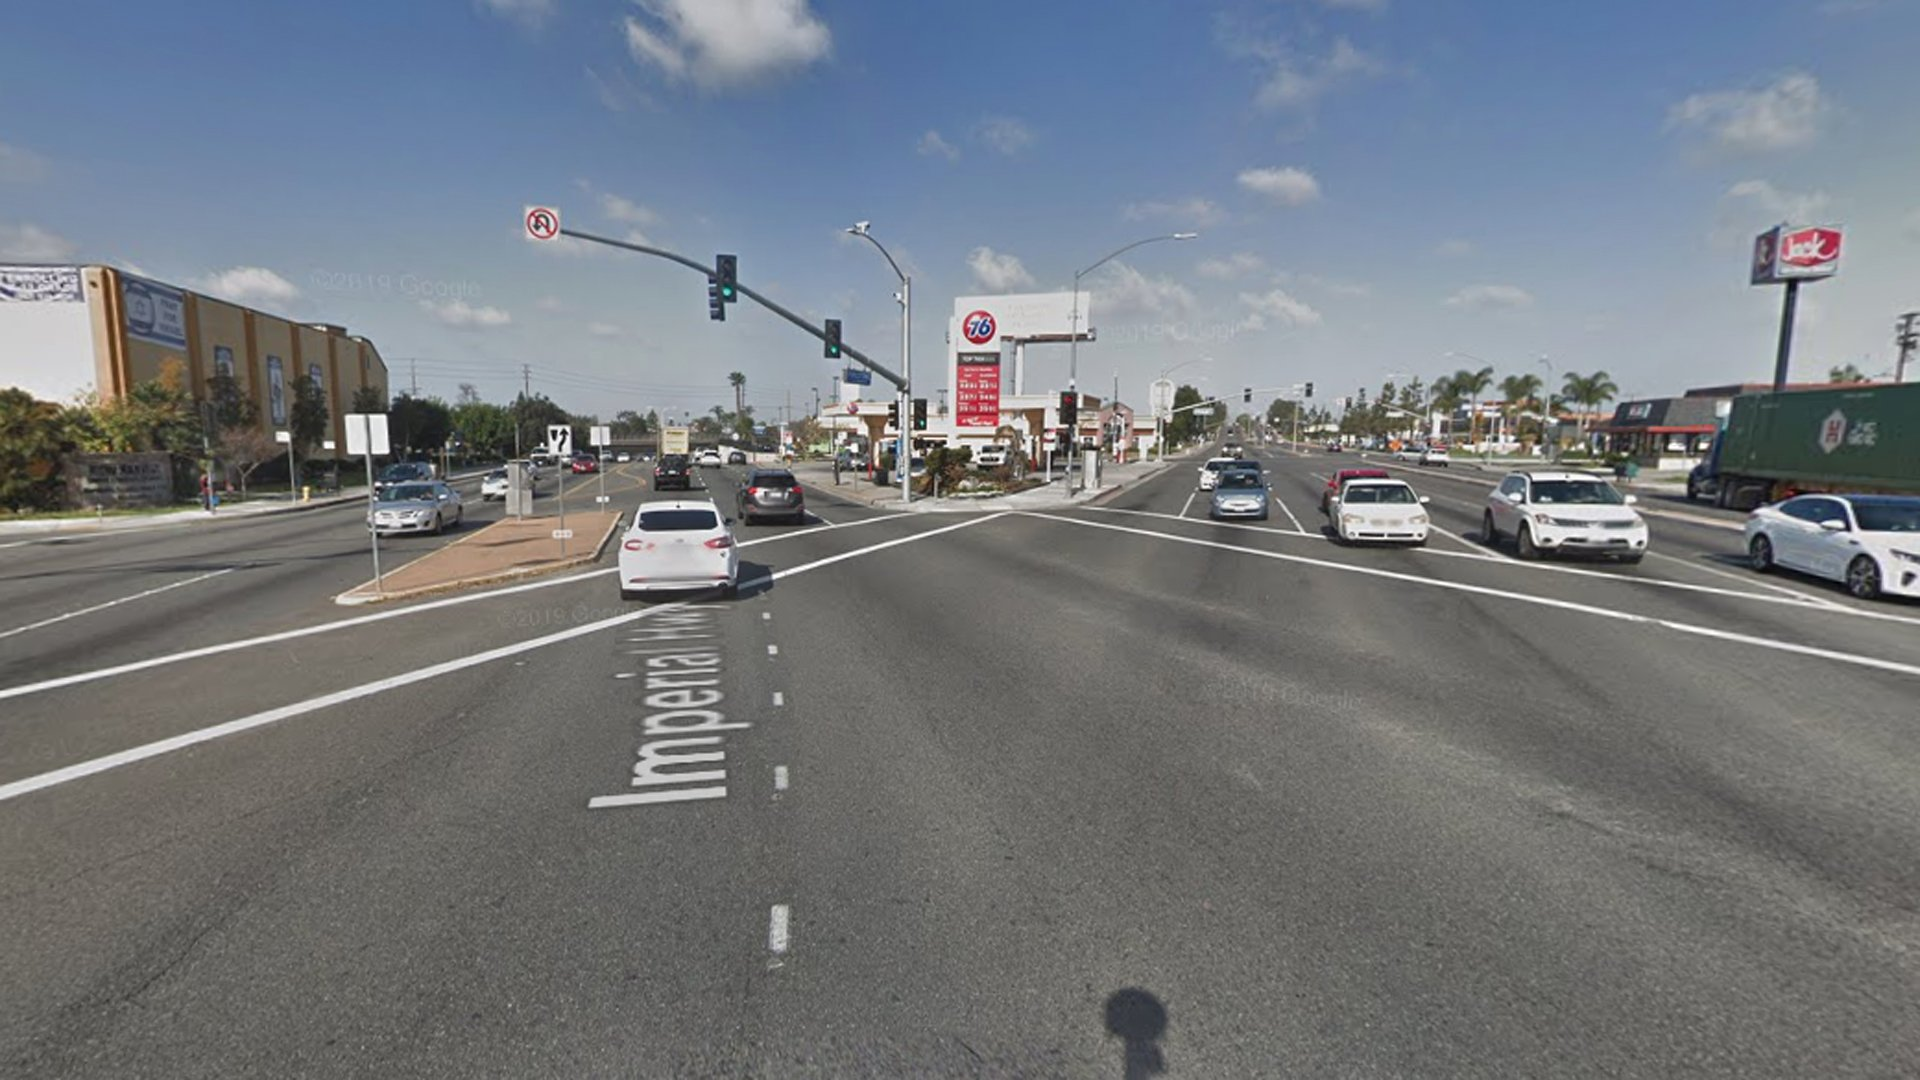 The intersection of Imperial Highway and Firestone Boulevard s shown in a Street View image from Google Maps.